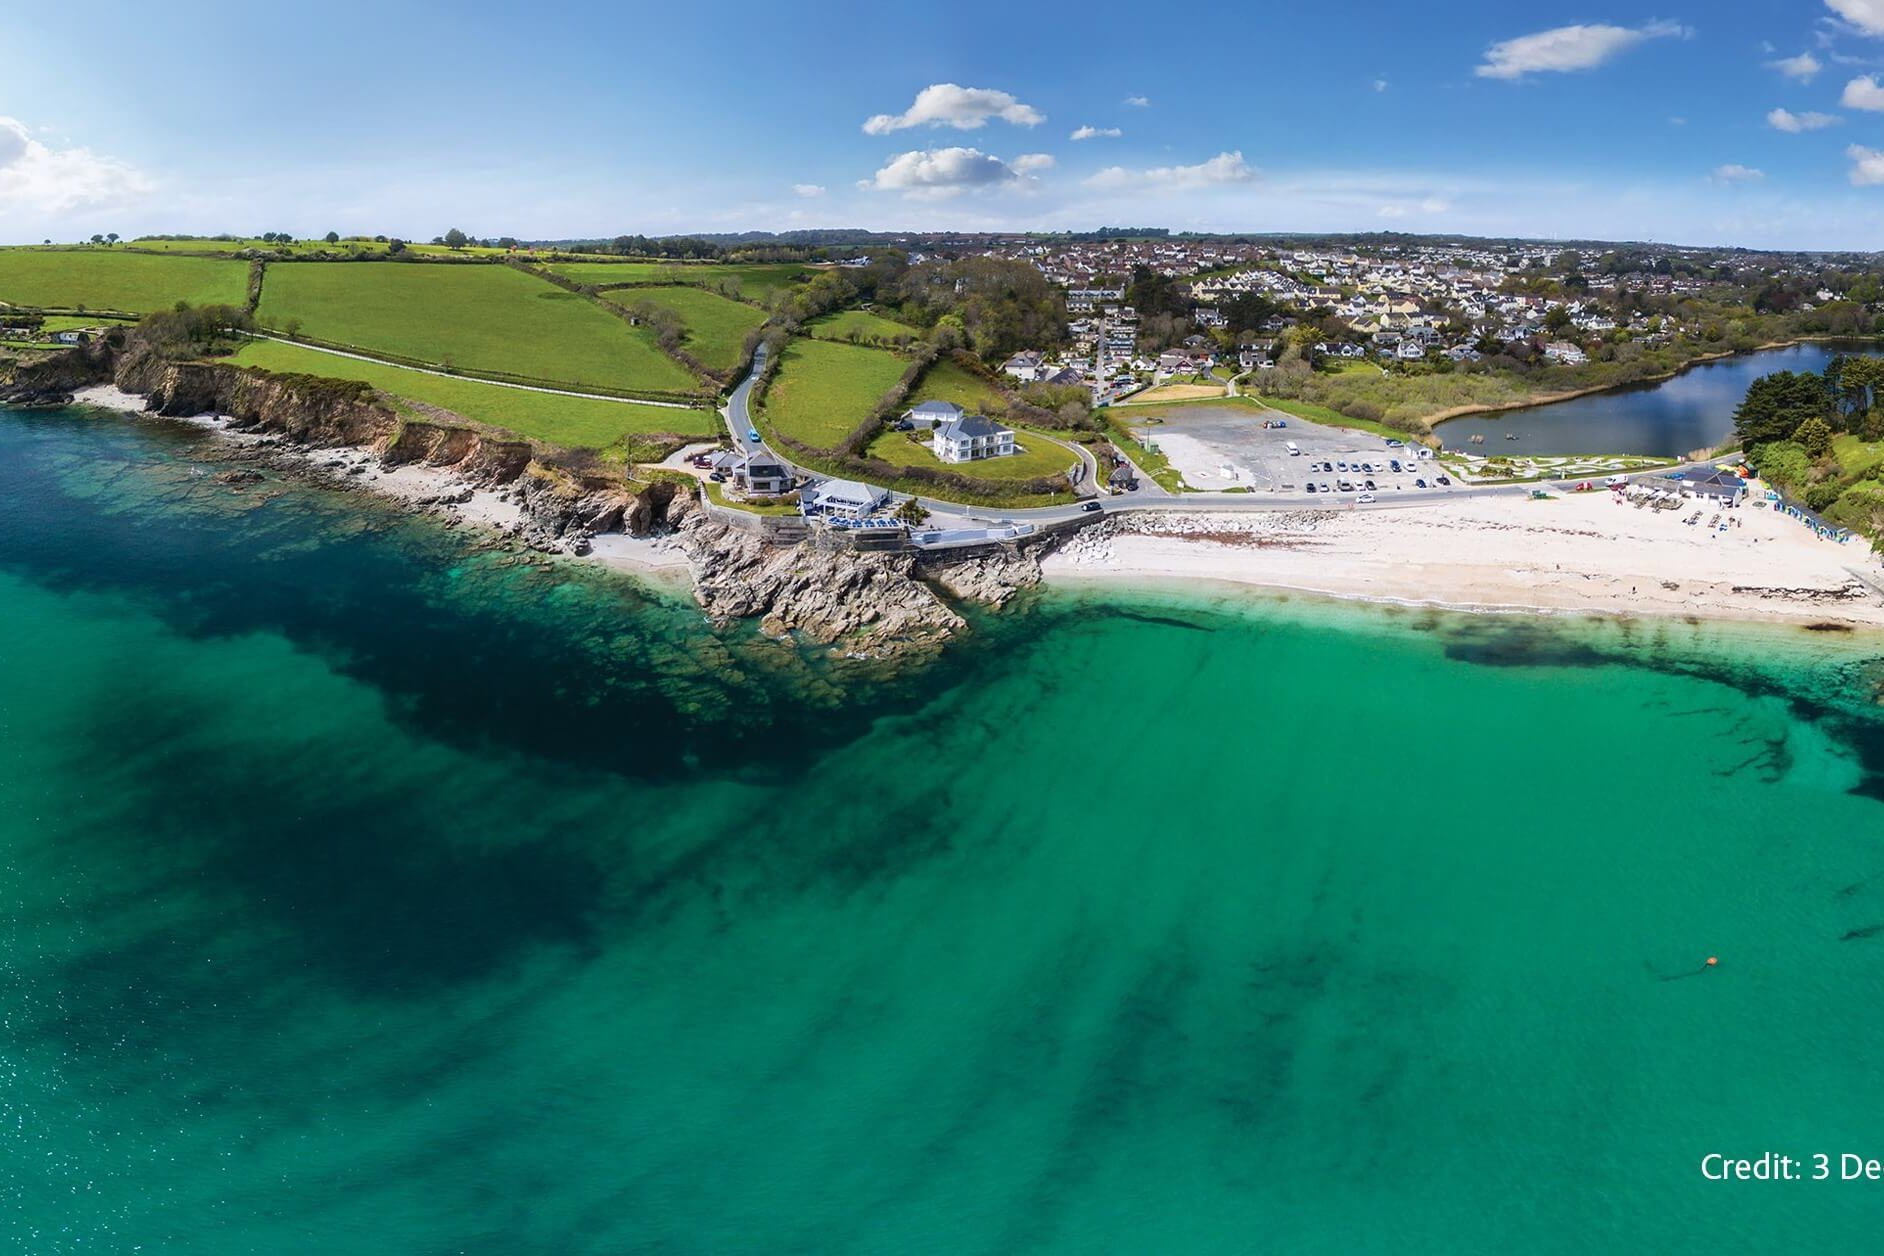 aerial view, birds eye, landscape, swanpool beach, #LoveFalmouth. #LoveTheSea, falmouth